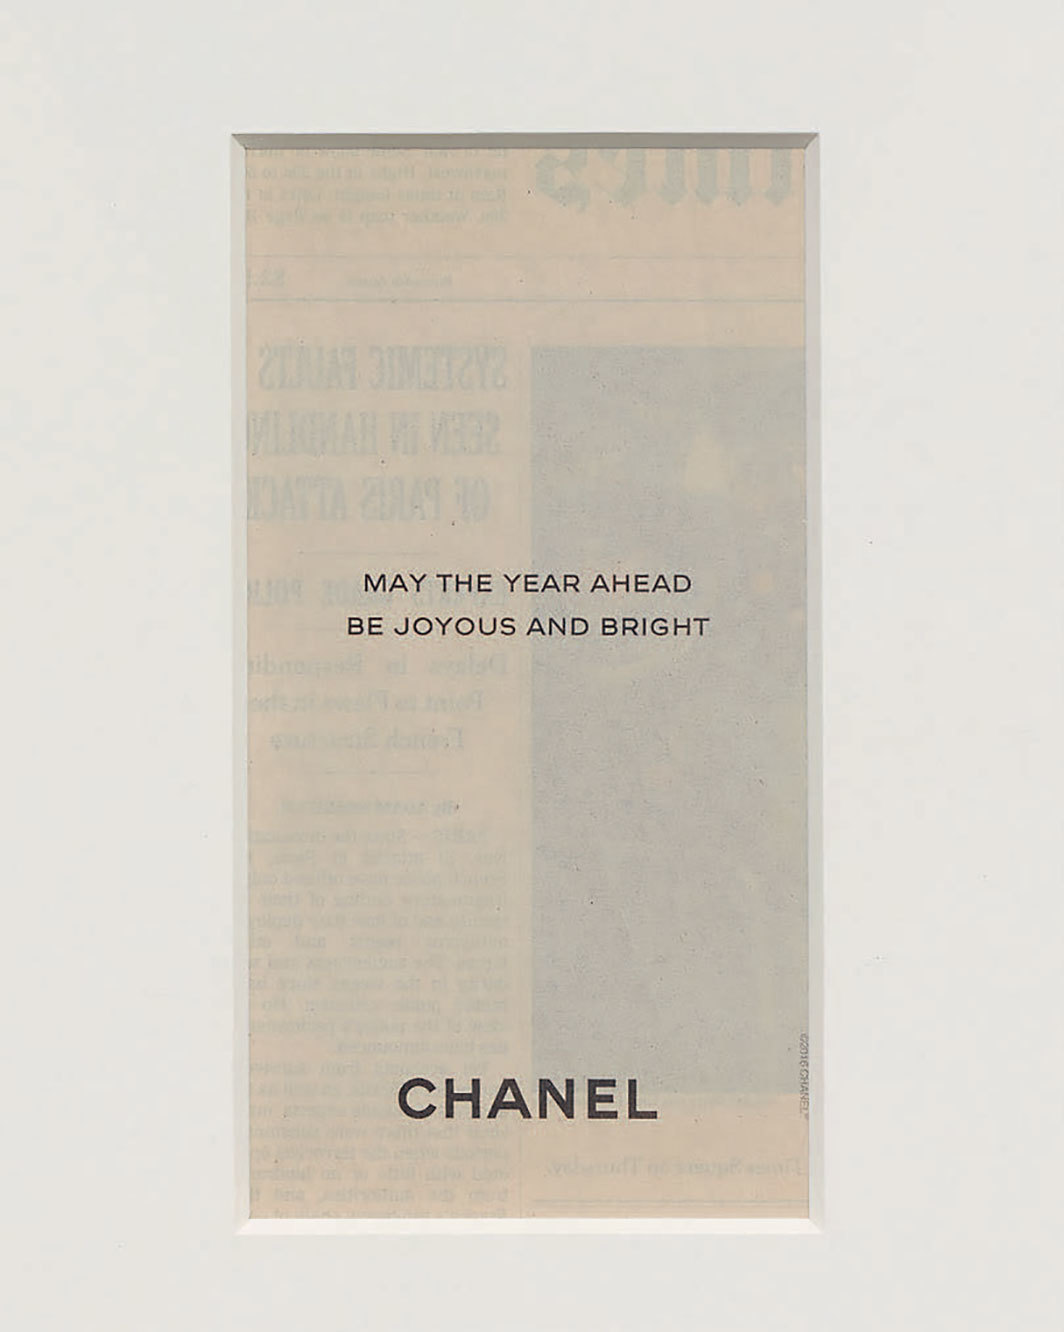 "Troy Brauntuch, Chanel, 2020, newspaper advertisement clipped from a 2016 copy of the New York Times, 16 × 12 3⁄4""."